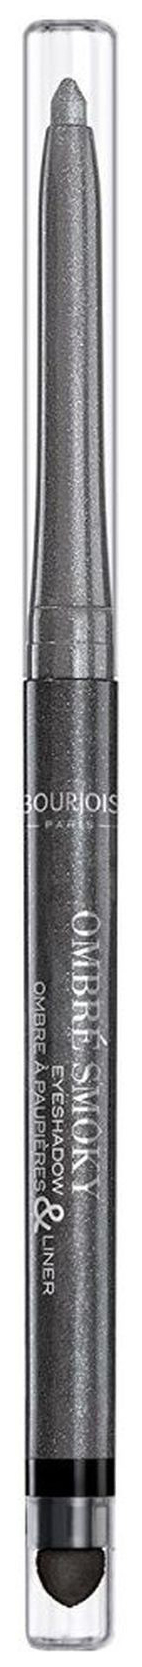 BOURJOIS OMBRE SMOKY EYESHADOW AND LINER